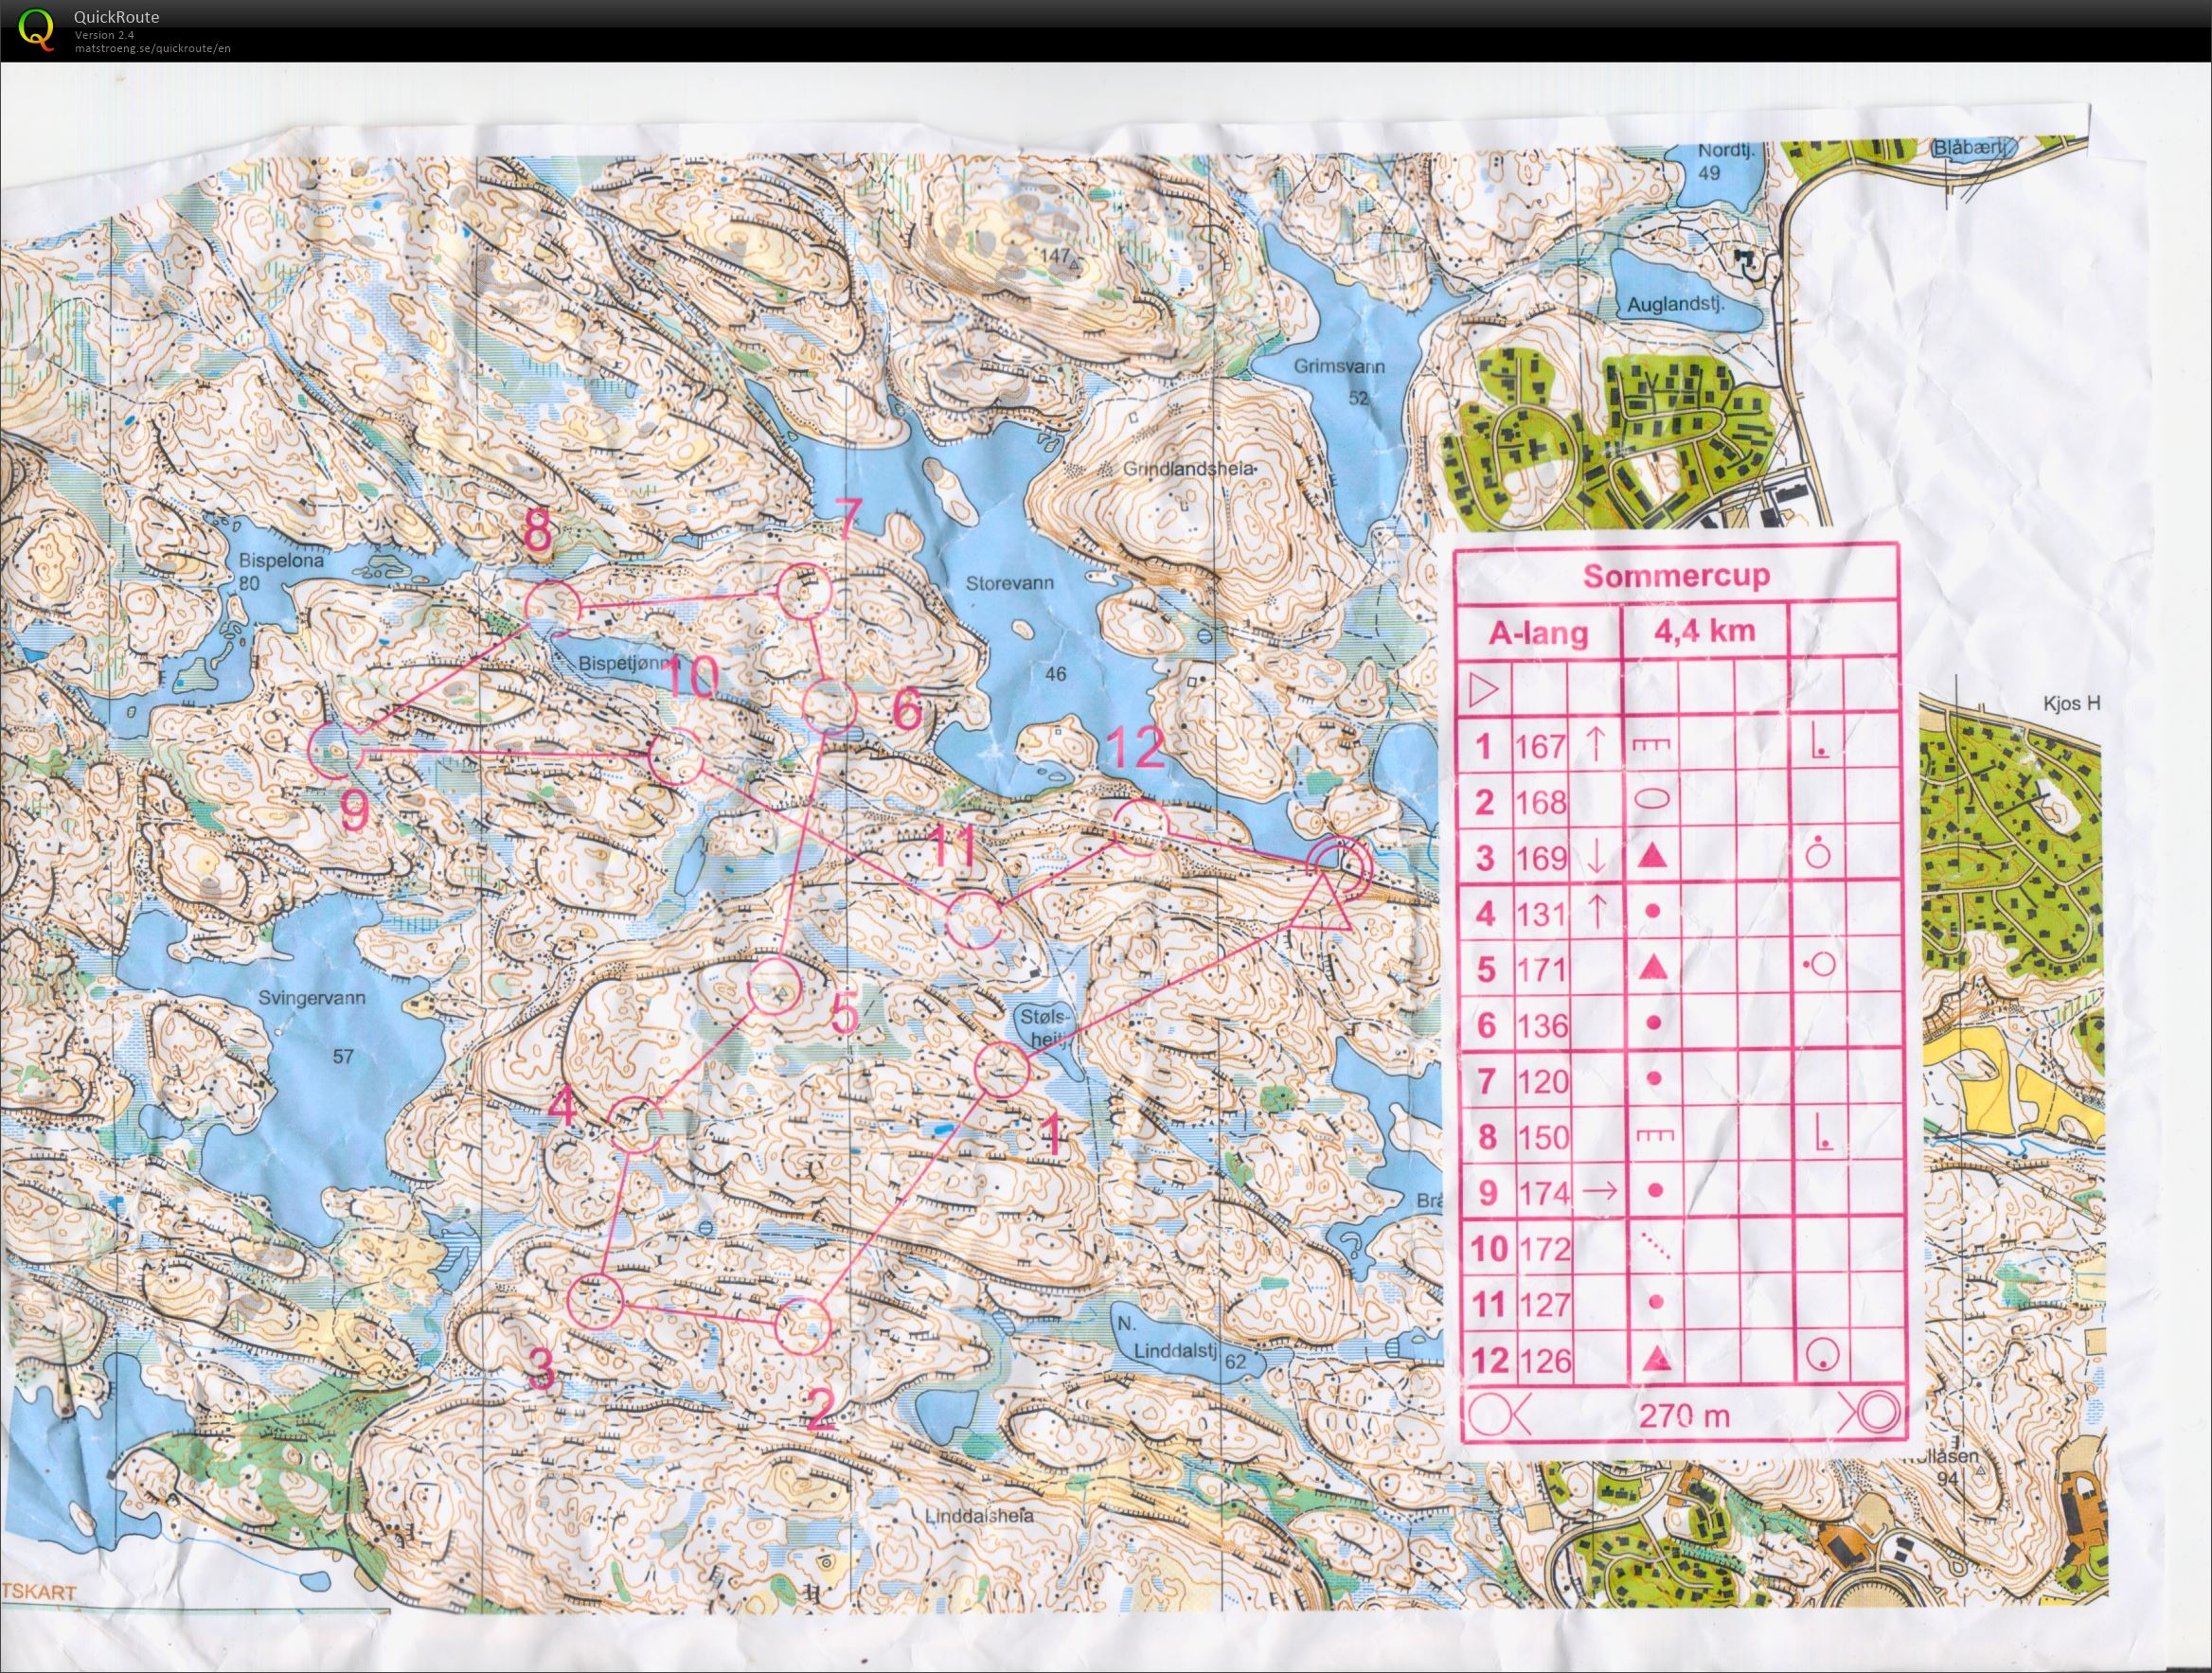 kart vågsbygd Sommercup #2, Vågsbygd   July 8th 2014   Orienteering Map from  kart vågsbygd